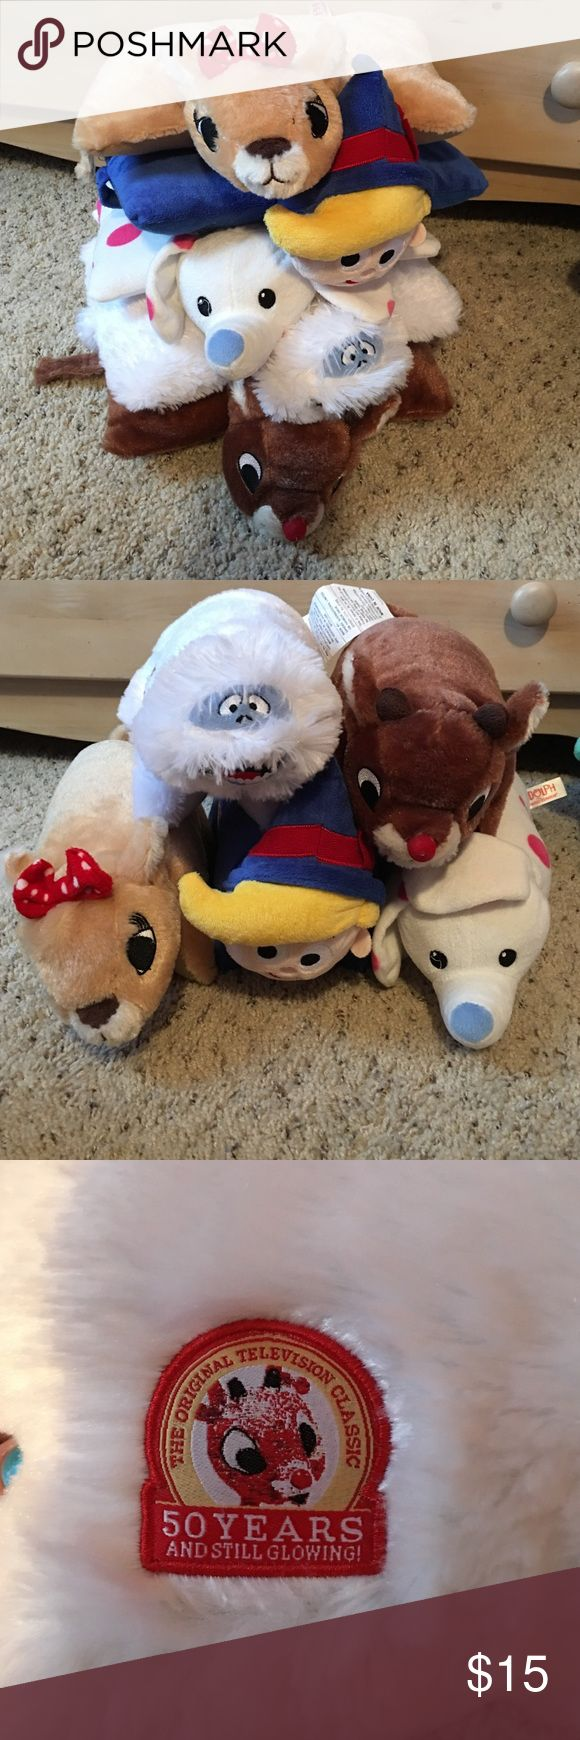 5 Rudolph movie pillow pets. Small size pillows. From the Rudolph movie. Includes Rudolph, Clarice, Hermine, Bumble and the elephant. Other